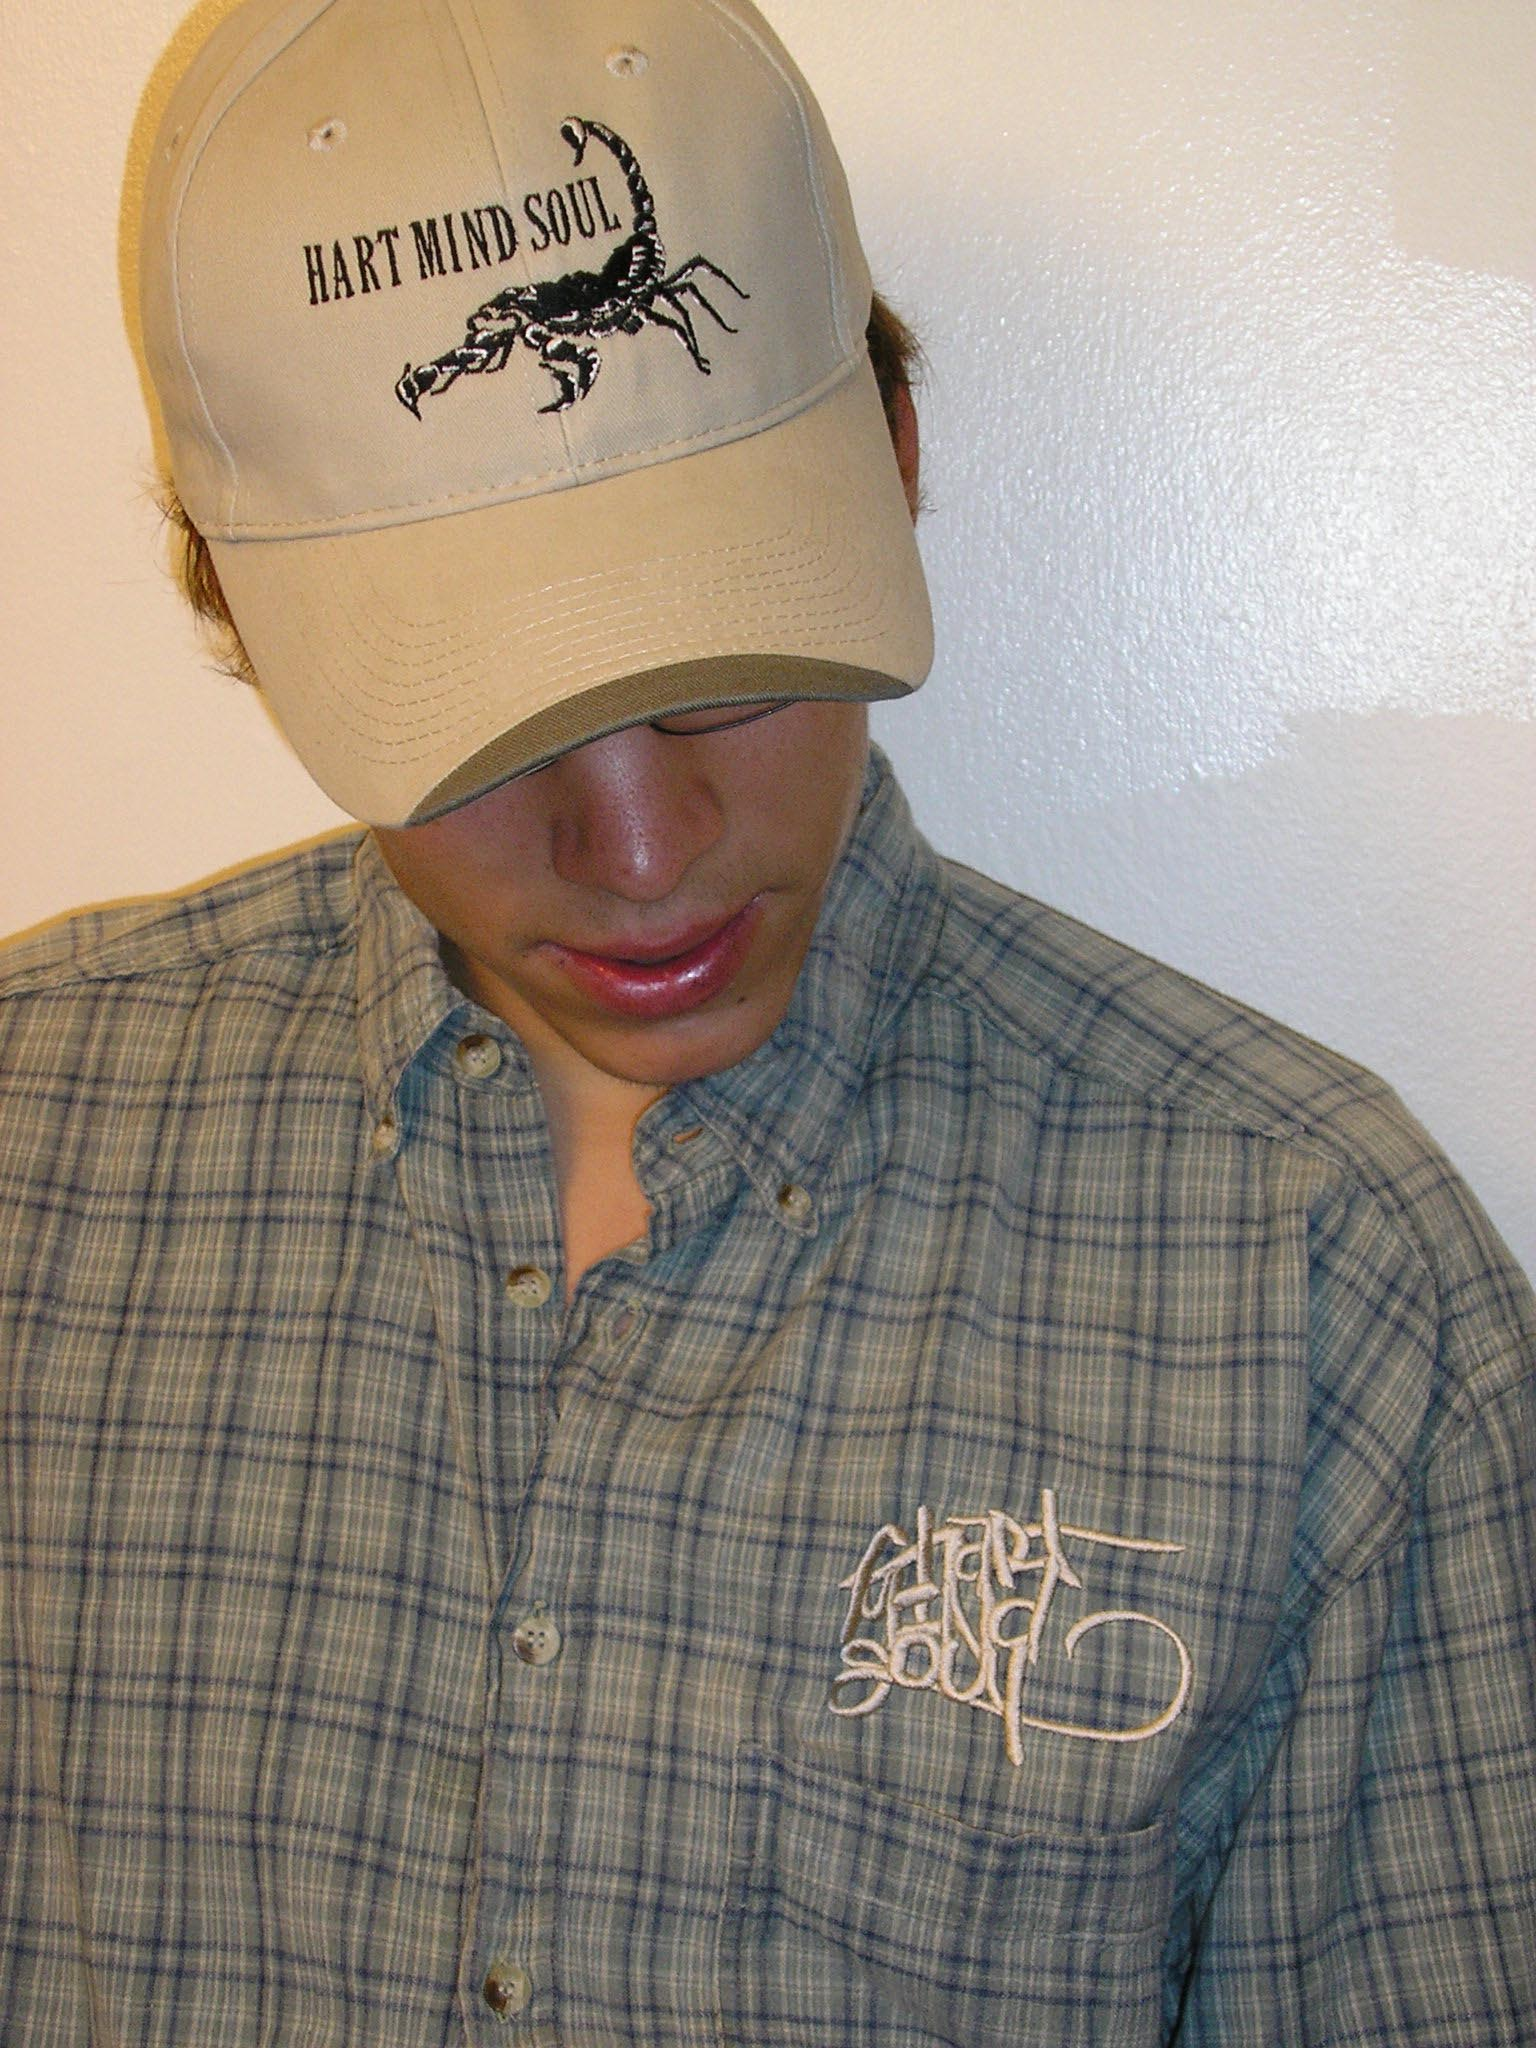 Hillsboro embroidery experts